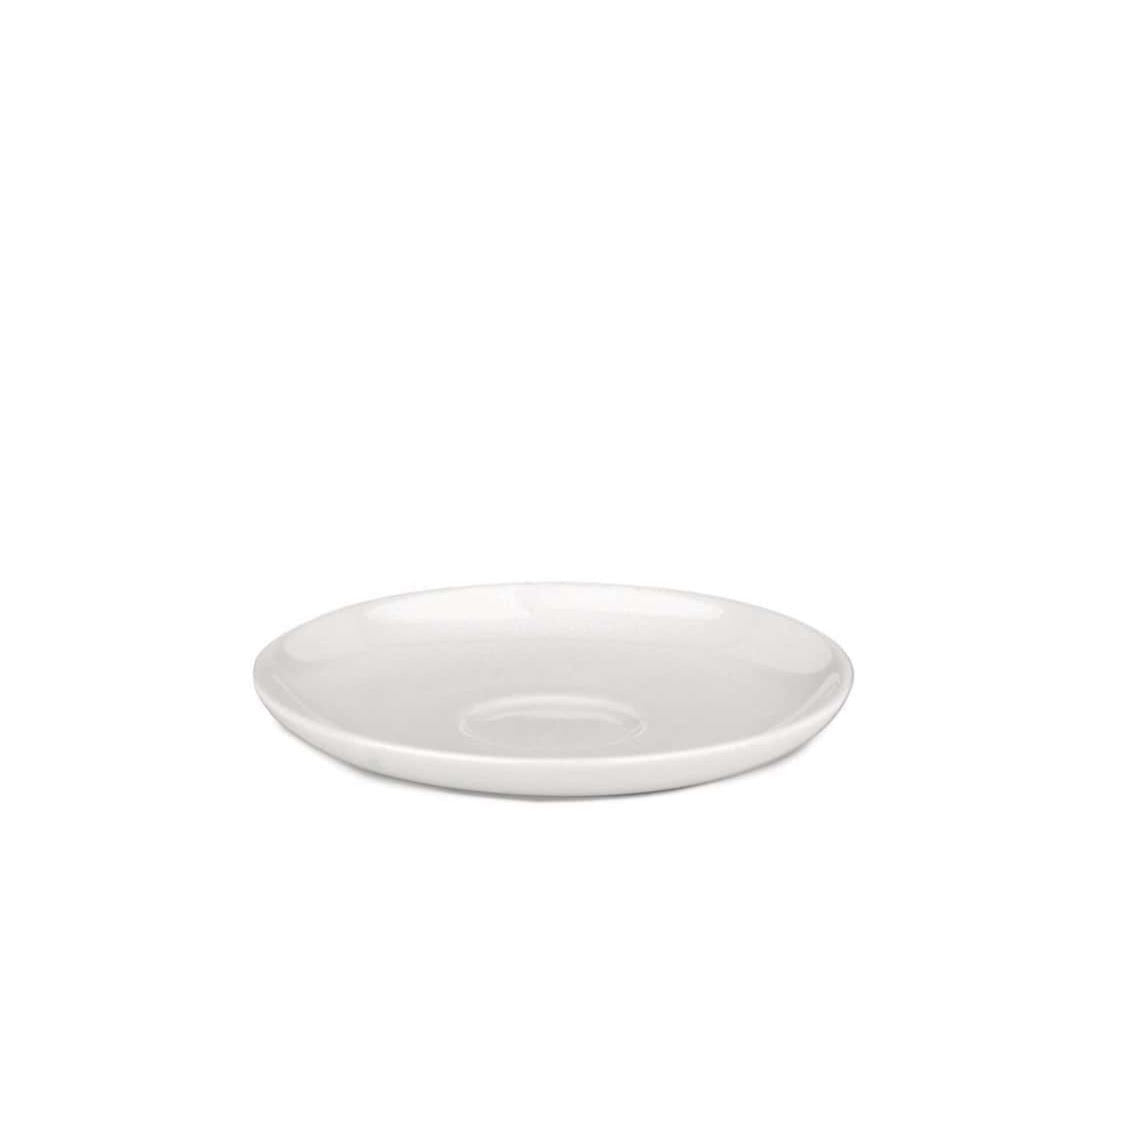 Alessi Alessi All Time Saucer For Mocha - White AGV29/77